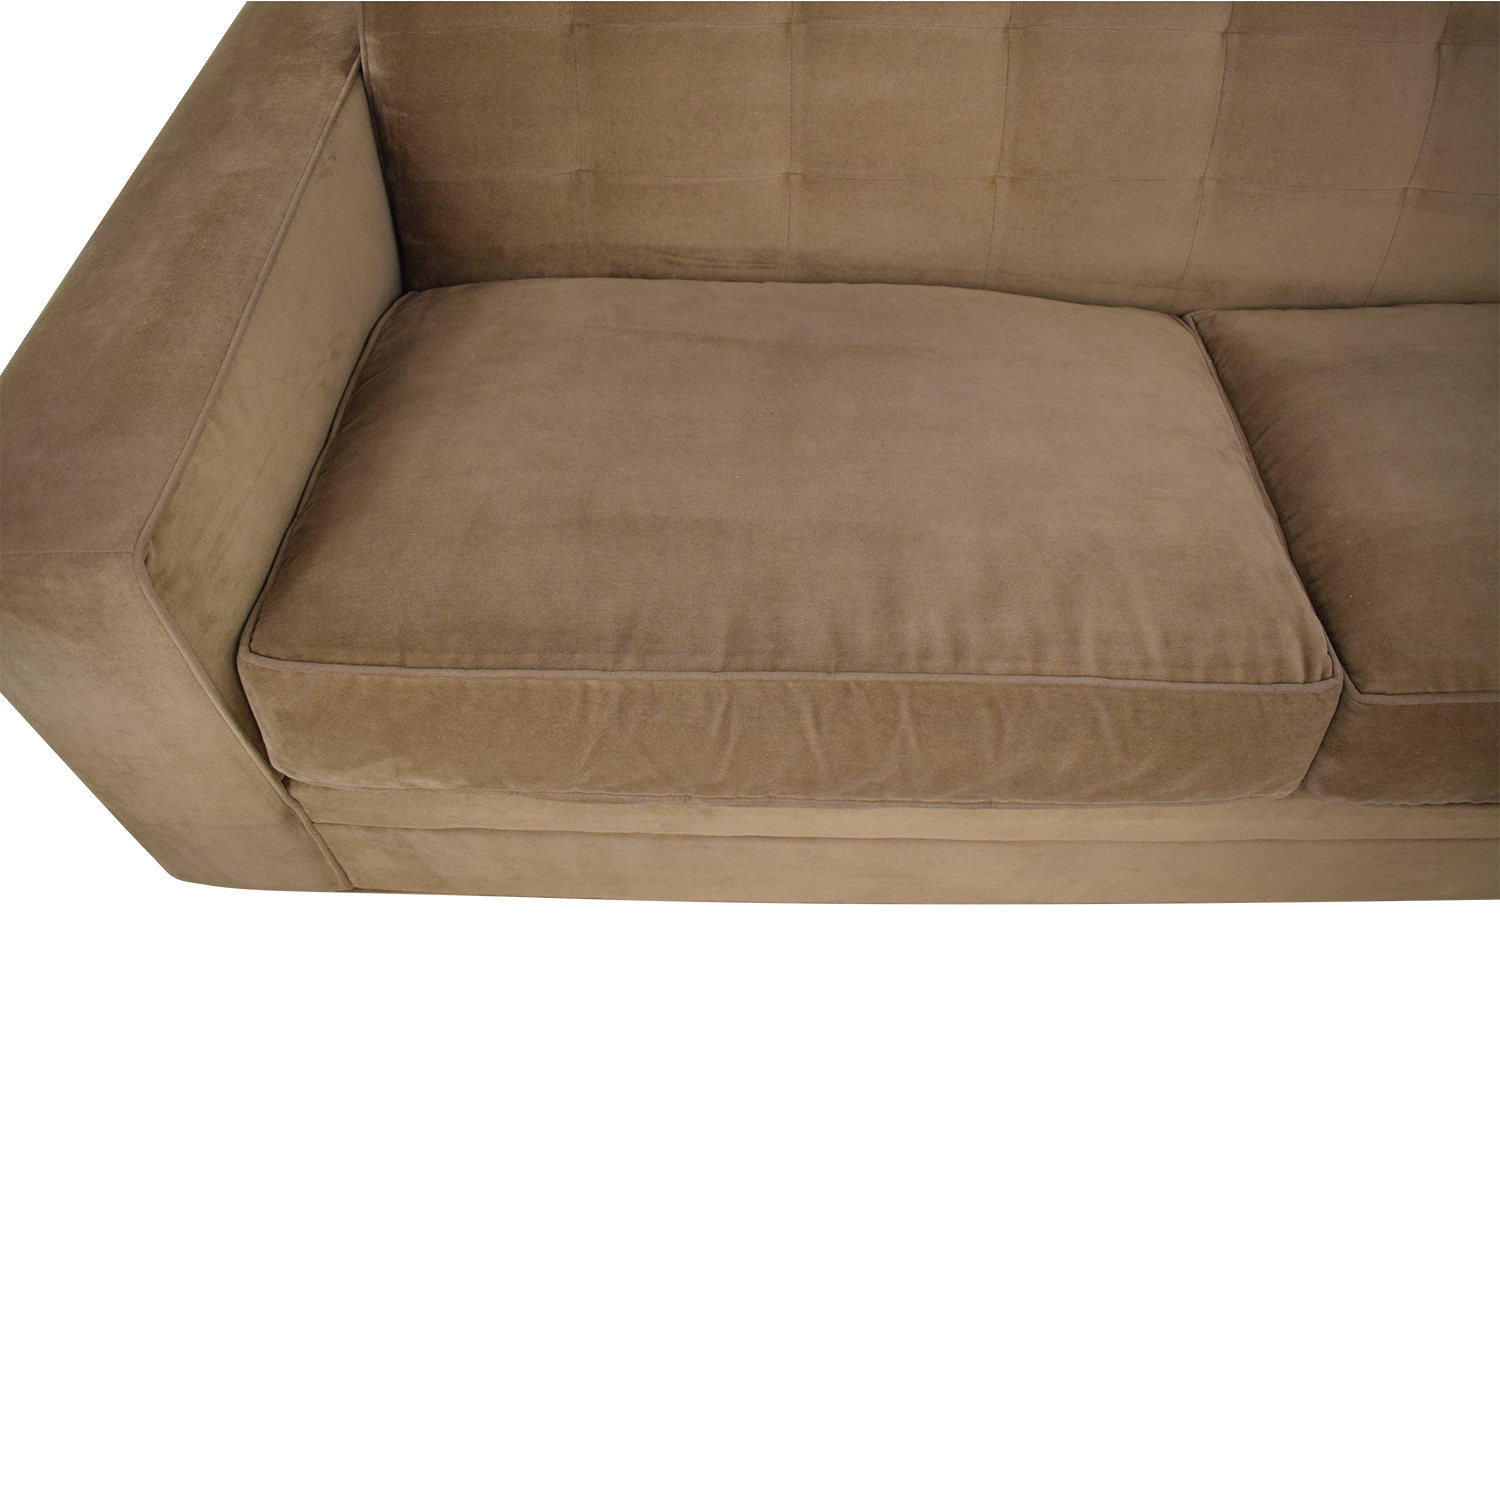 Mitchell Gold + Bob Williams Mitchell Gold + Bob Williams Two Cushion Sofa nyc